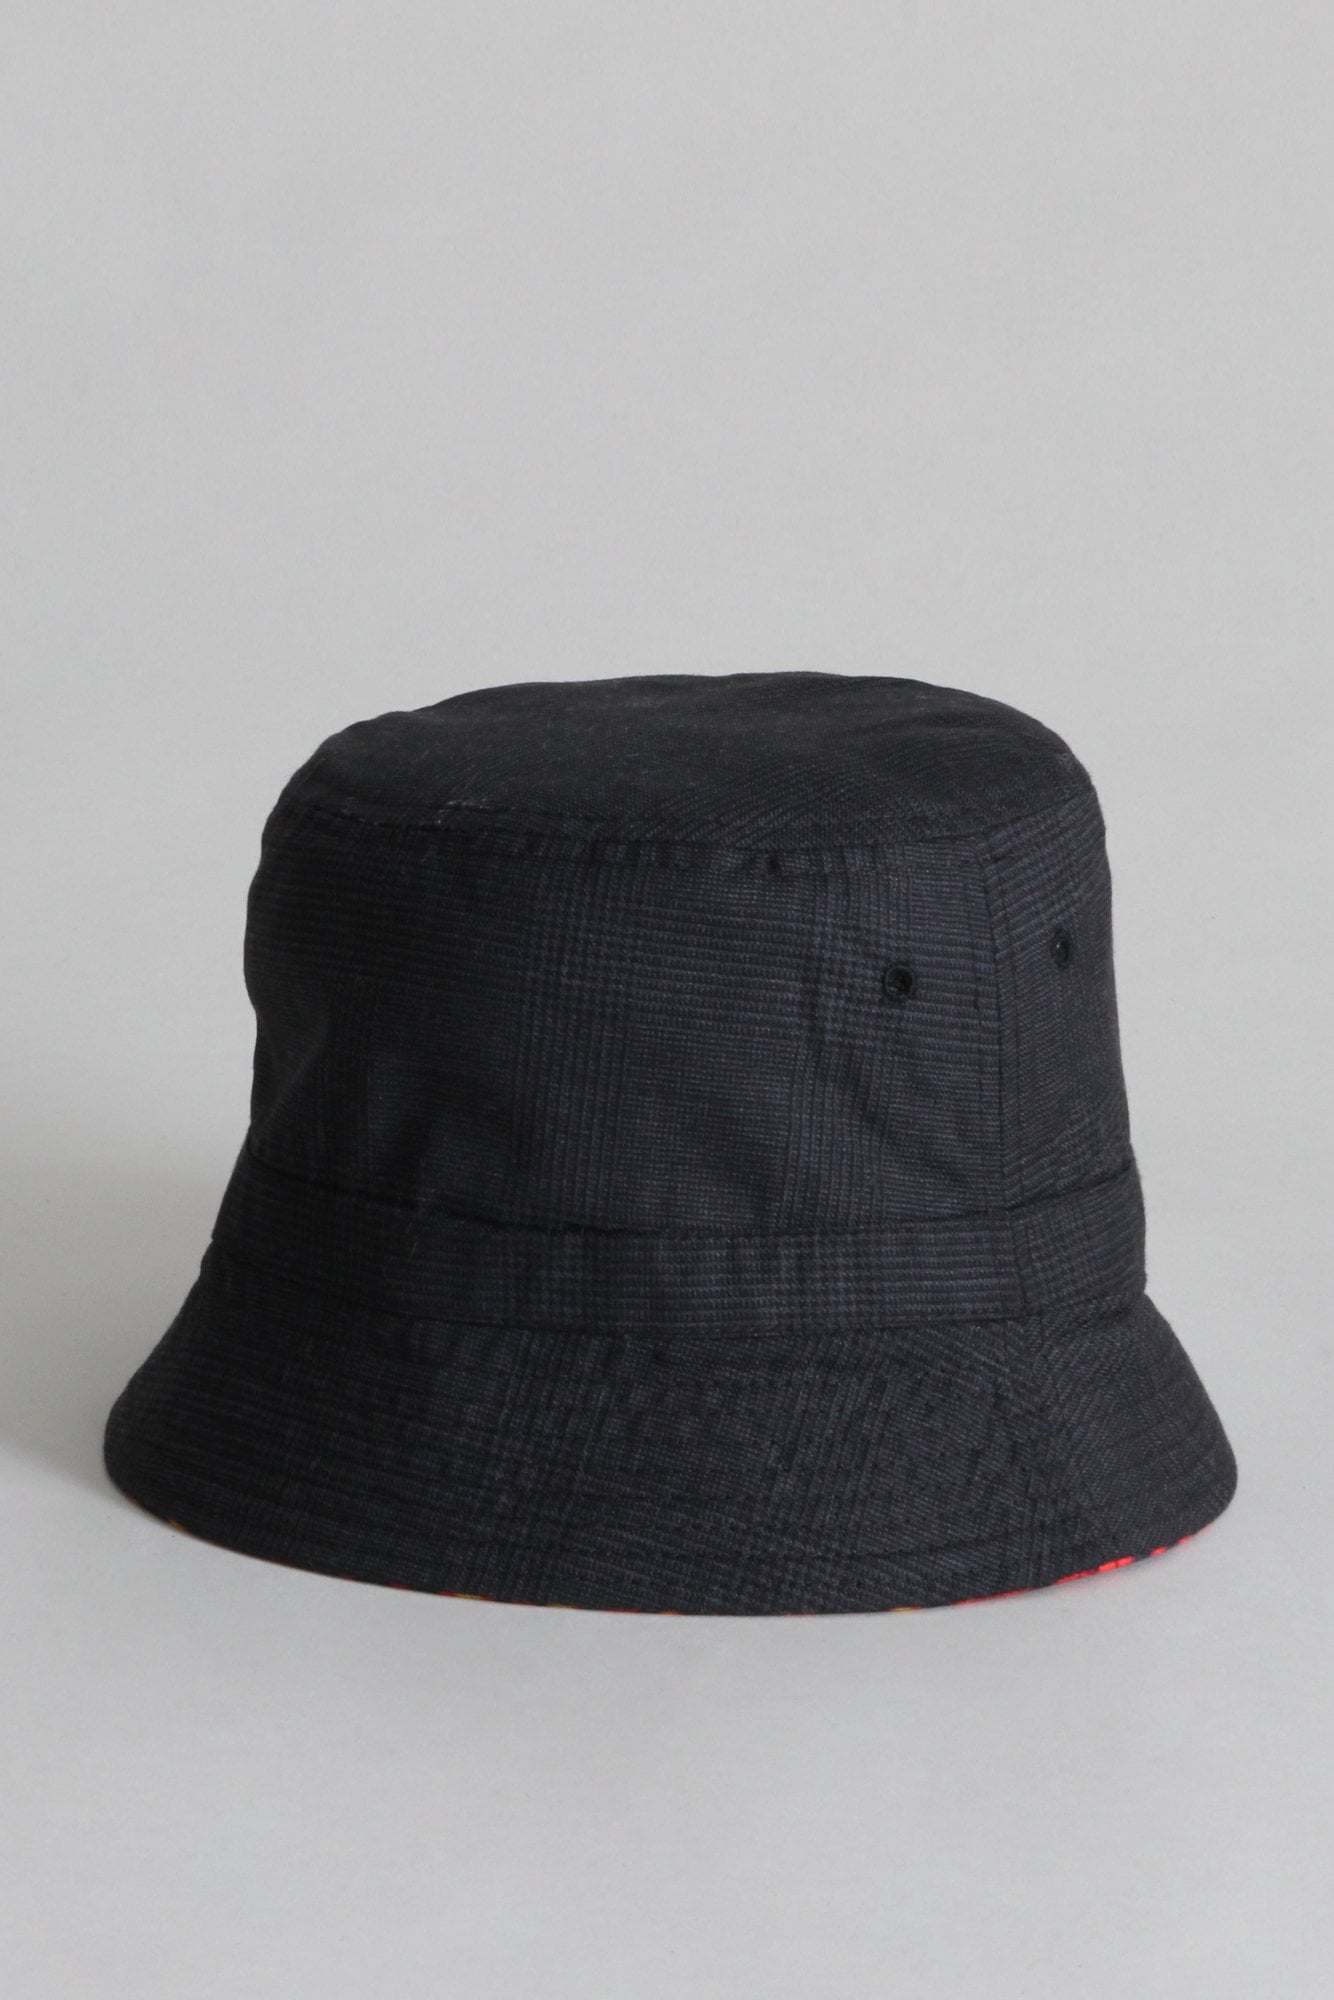 Reversible Bucket Hat - Flaming Skull with Grey Pin Dot